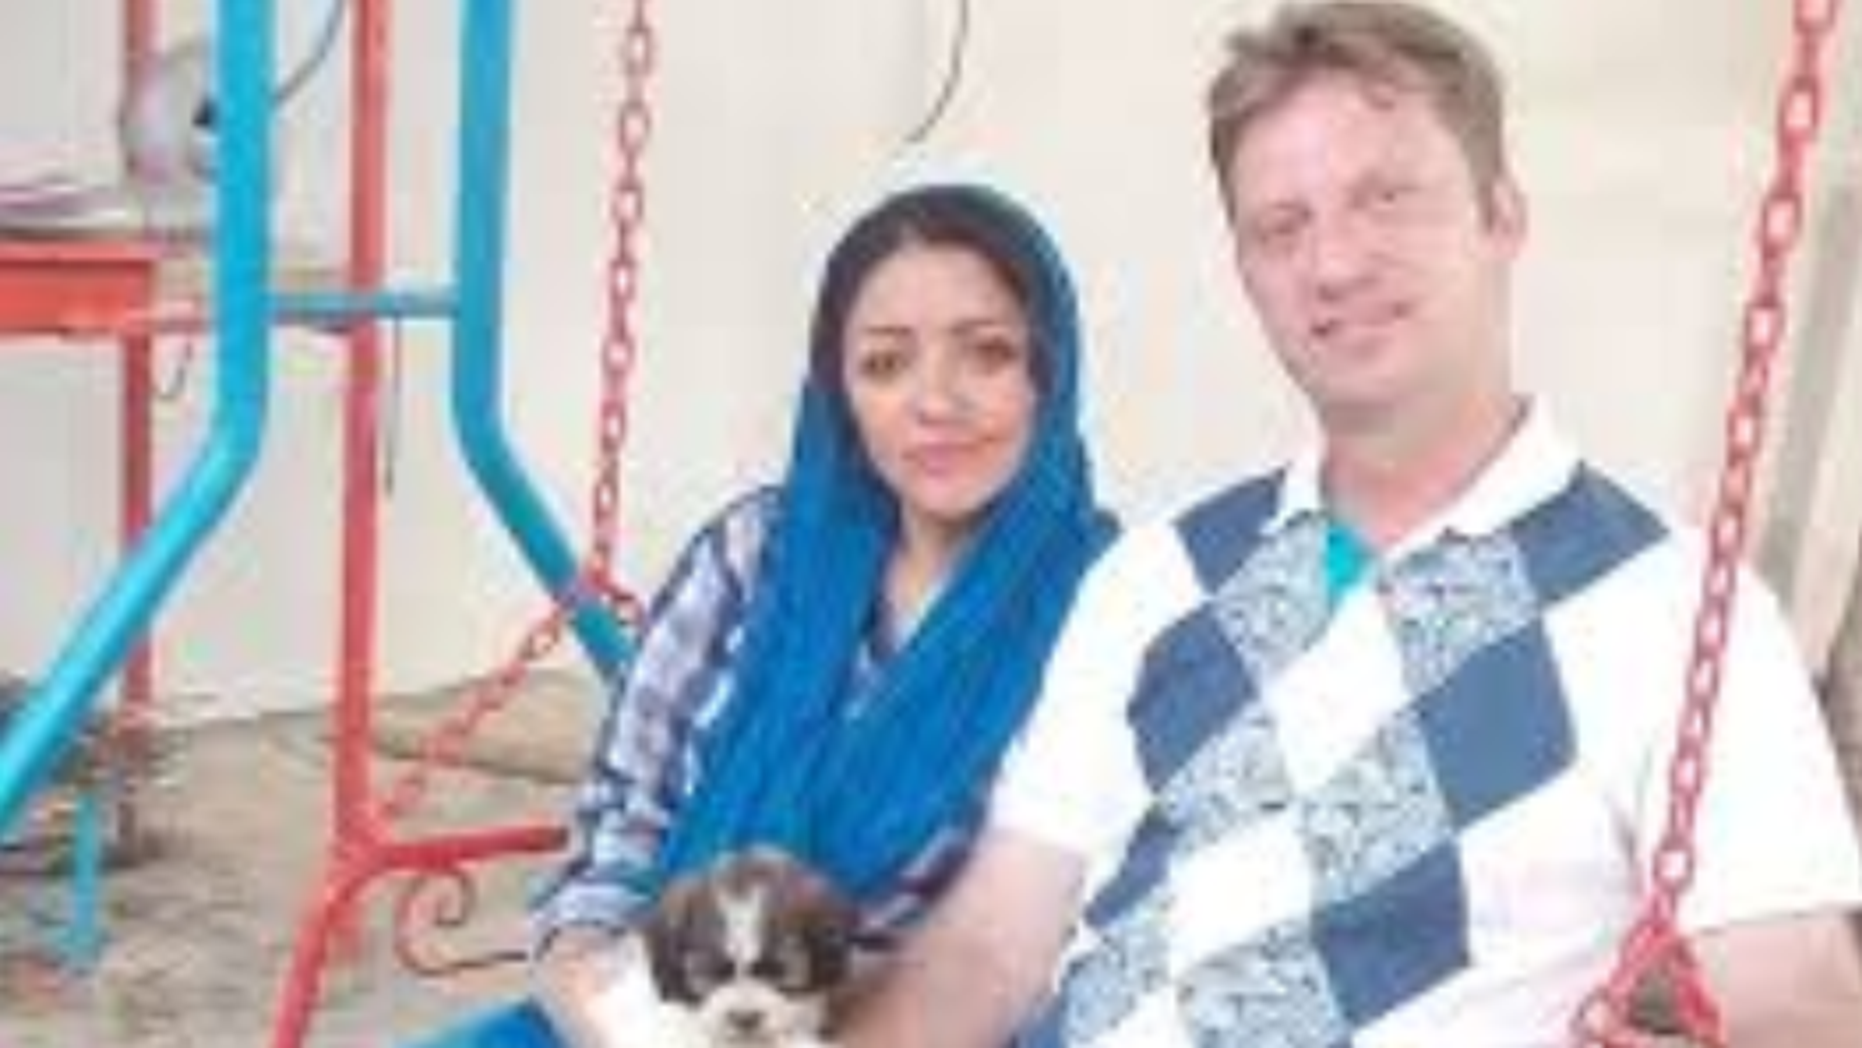 United States  veteran reportedly held prisoner in Iran for months